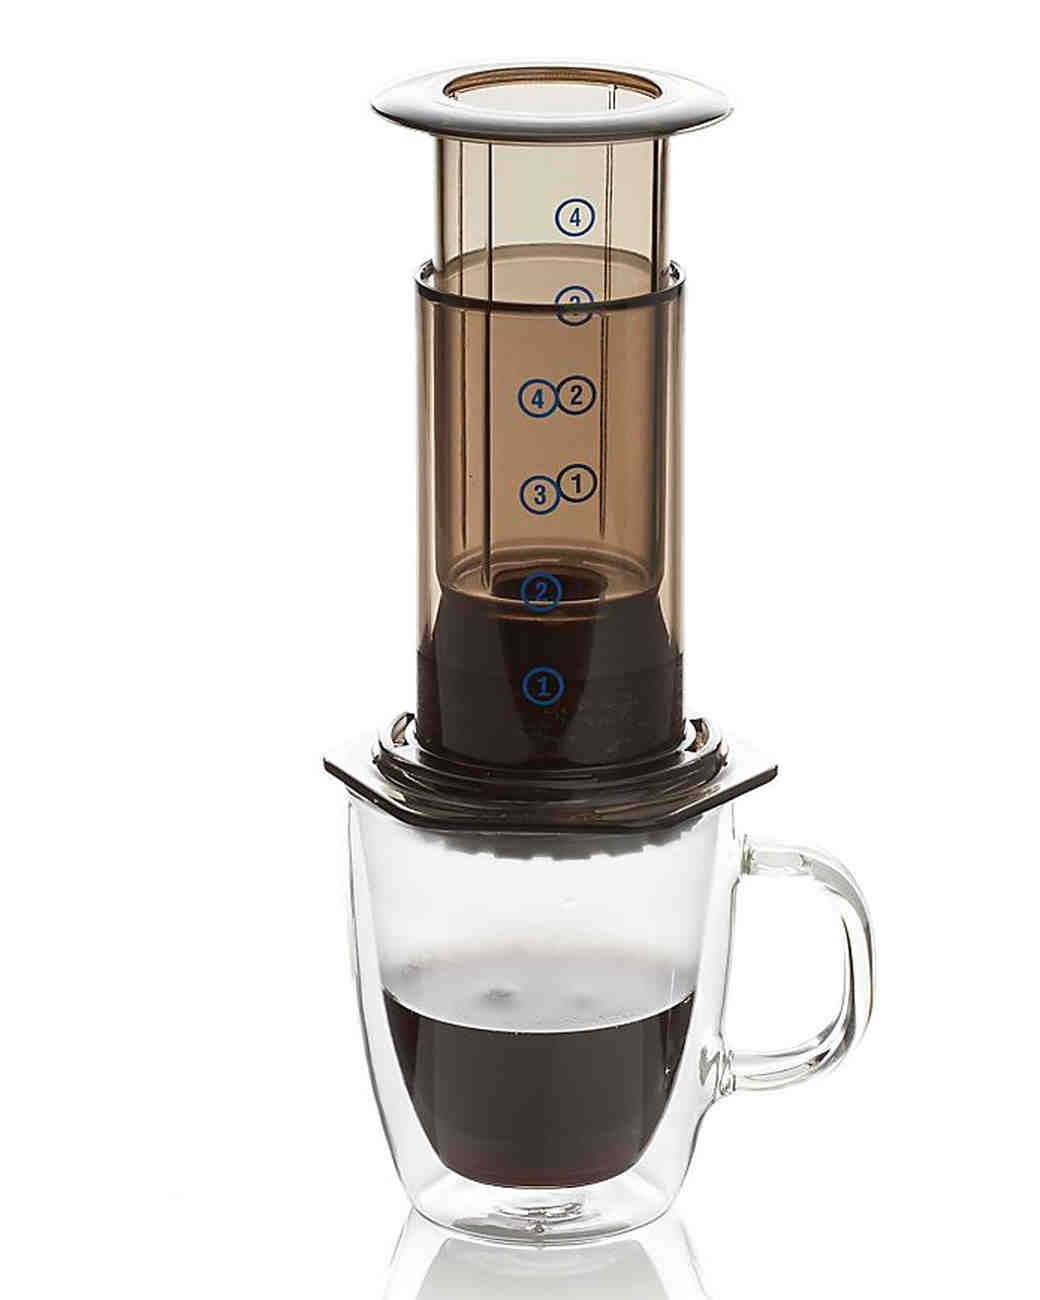 coffee-makers-registry-aeropress-0914.jpg